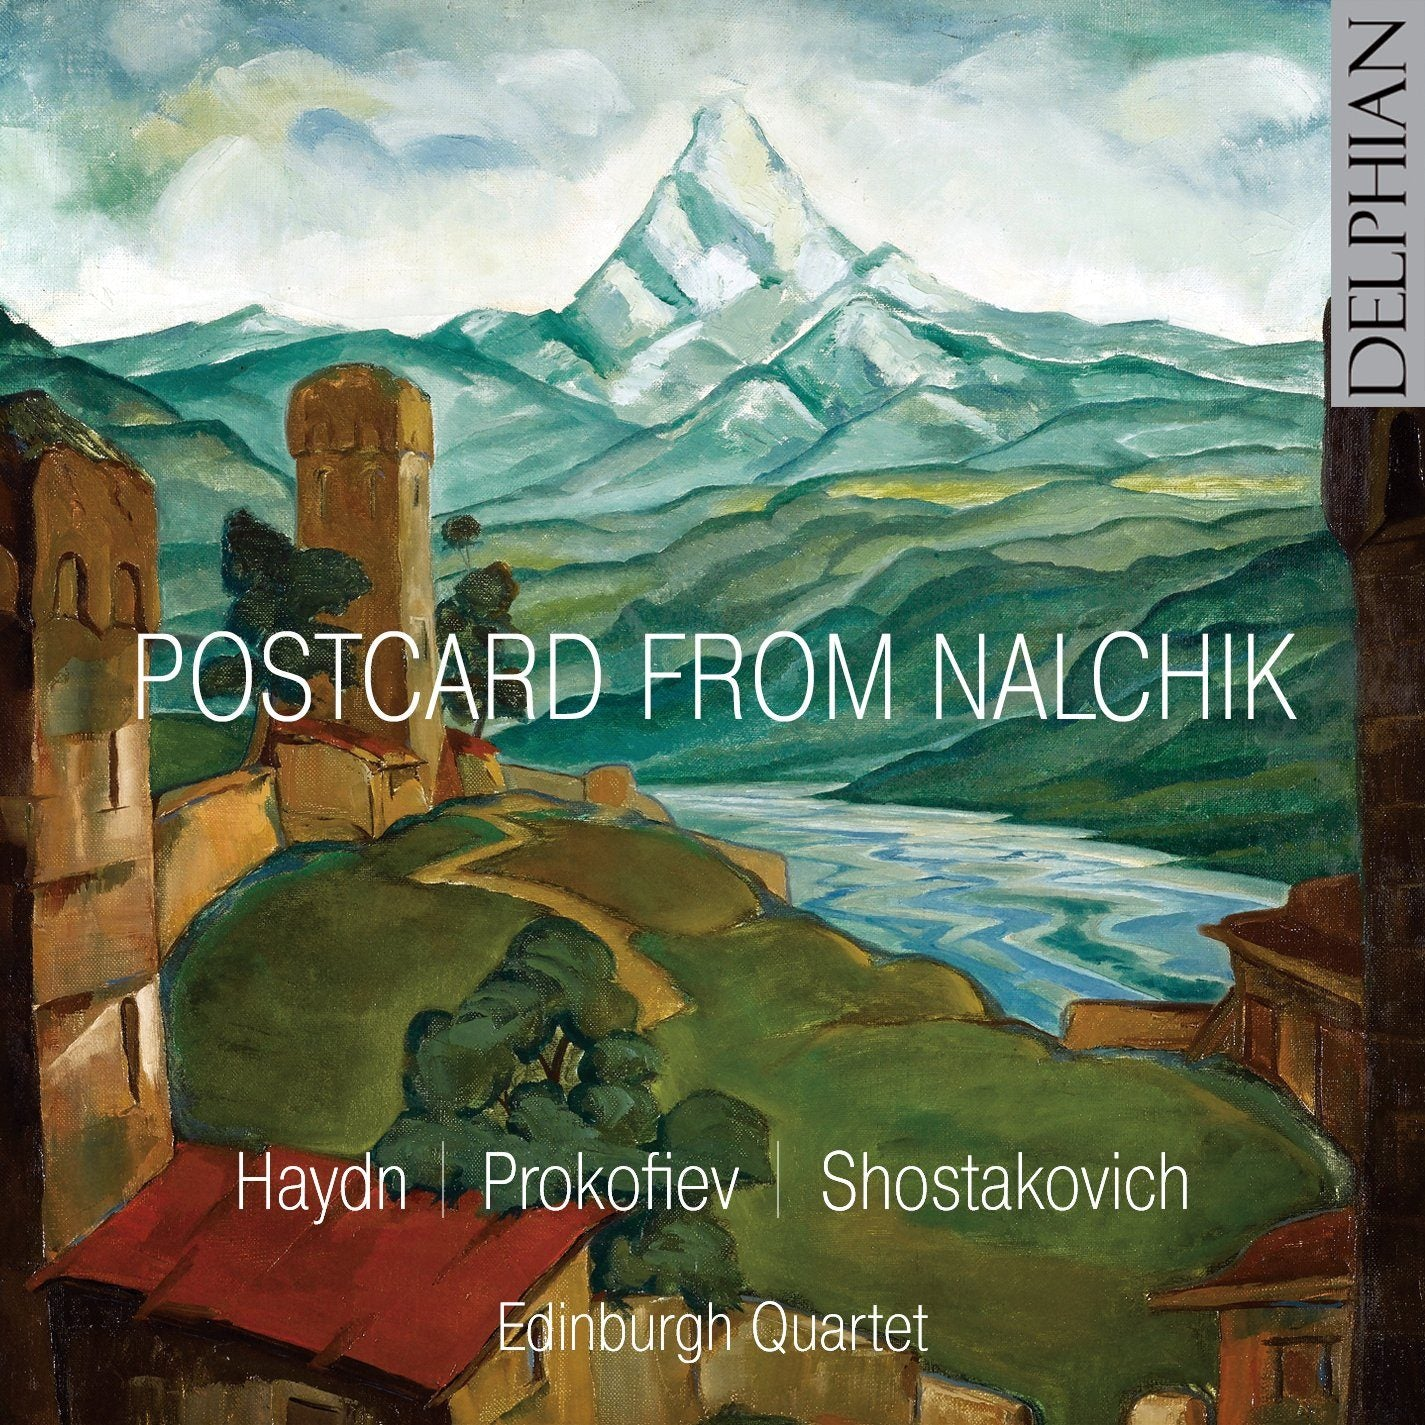 Postcard from Nalchik: Haydn / Prokofiev / Shostakovich CD Delphian Records